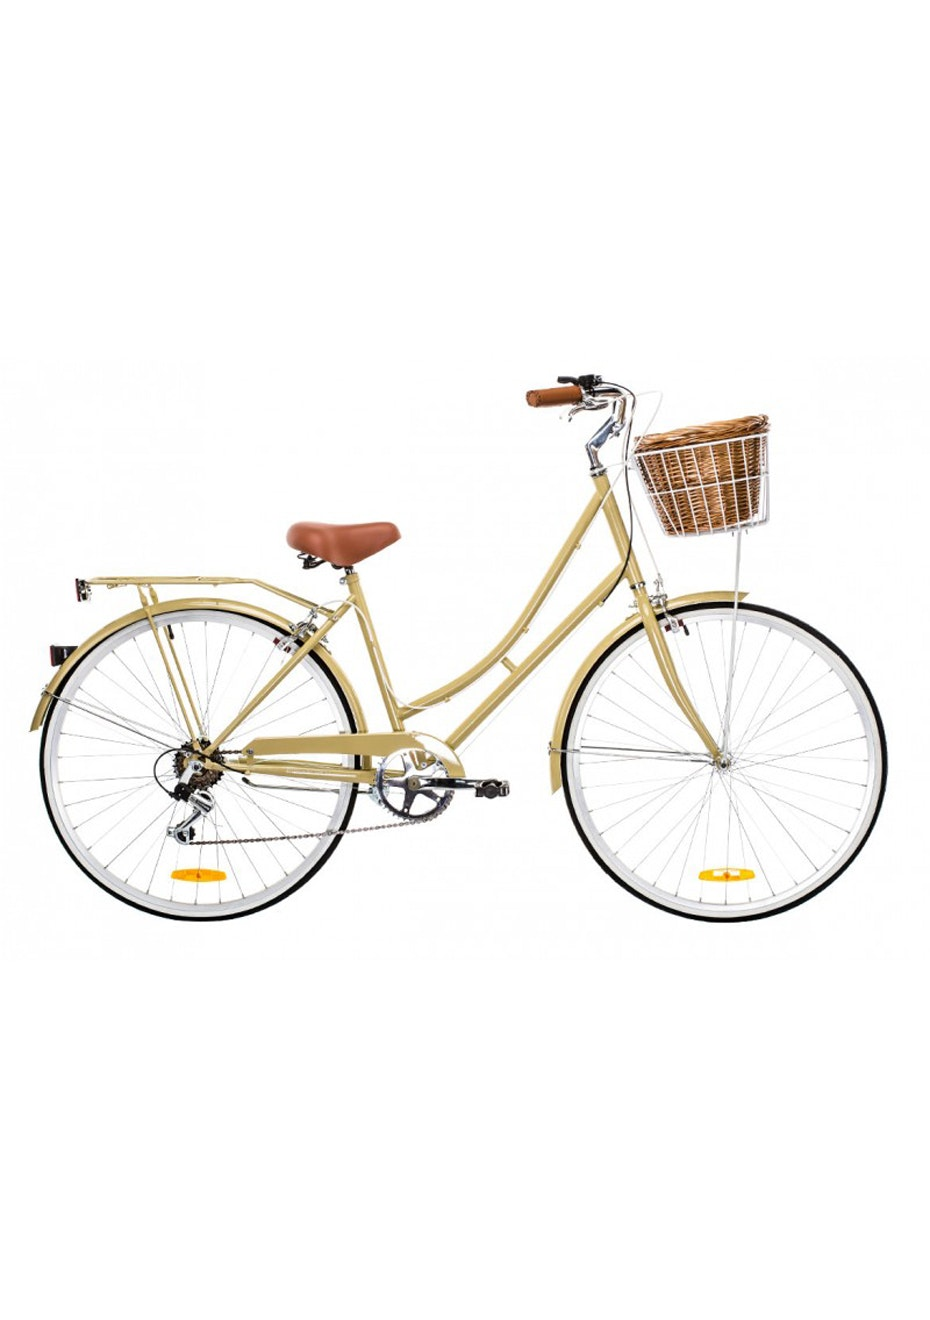 Reid Bikes - Dutch Vintage Ladies 7-Speed Delux Coffee